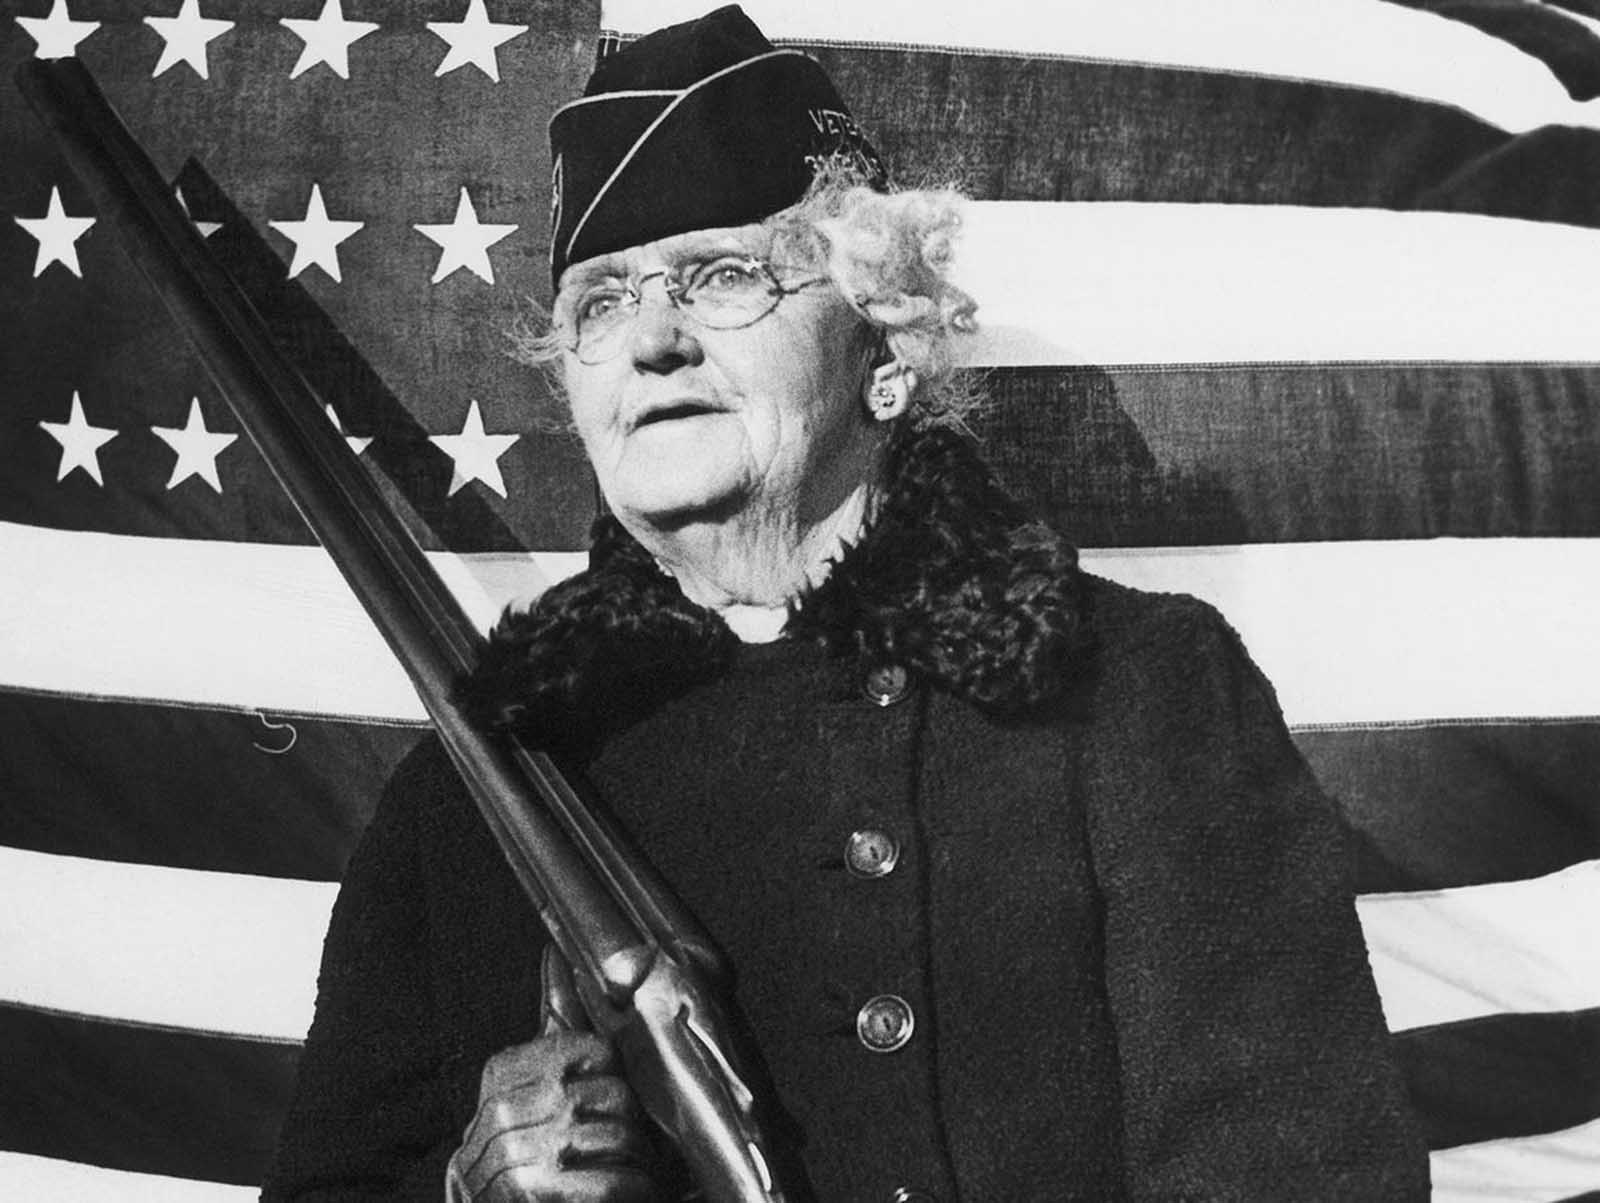 Mrs. Paul Titus, 77-year-old air raid spotter of Bucks County, Pennsylvania, carries a gun as she patrols her beat, on December 20, 1941. Mrs. Titus signed-up the day after the Pearl Harbor attack.